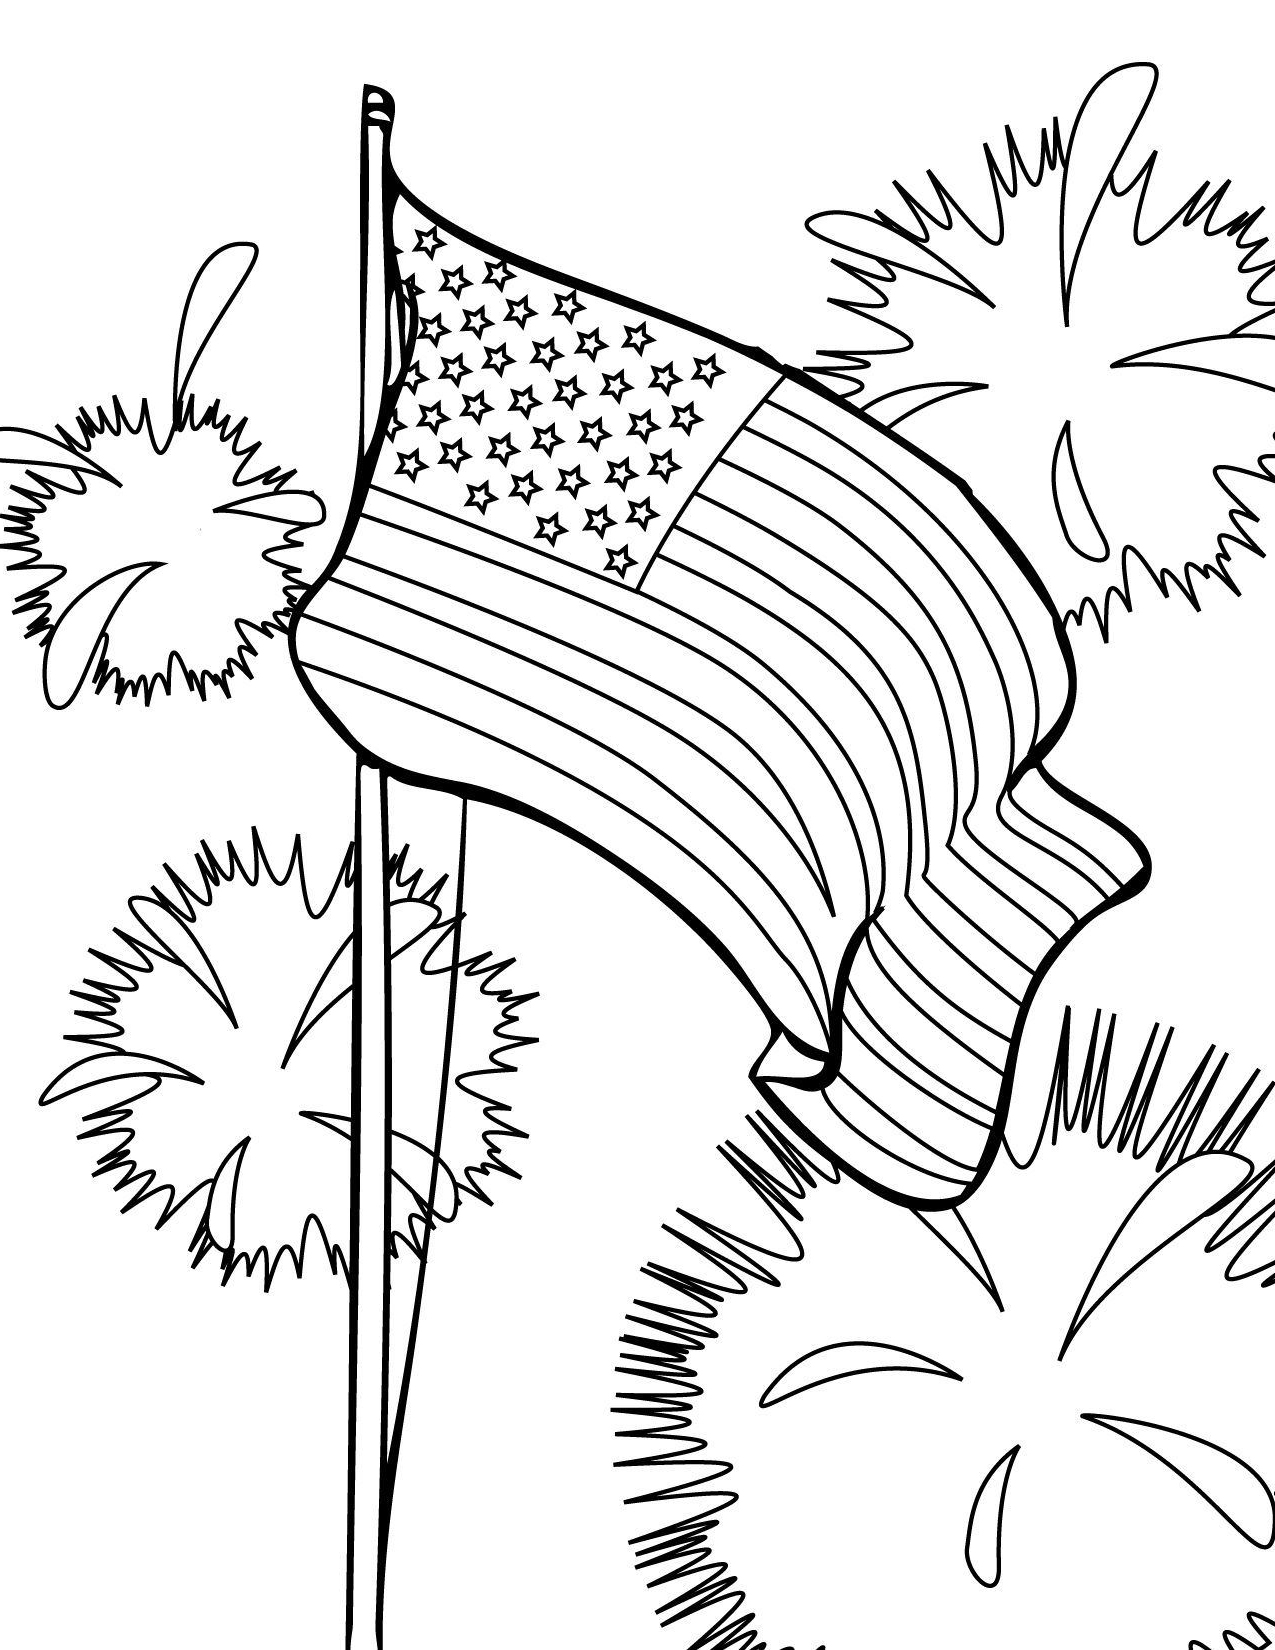 american flag to color get this american flag coloring pages kids printable 36481 color american flag to